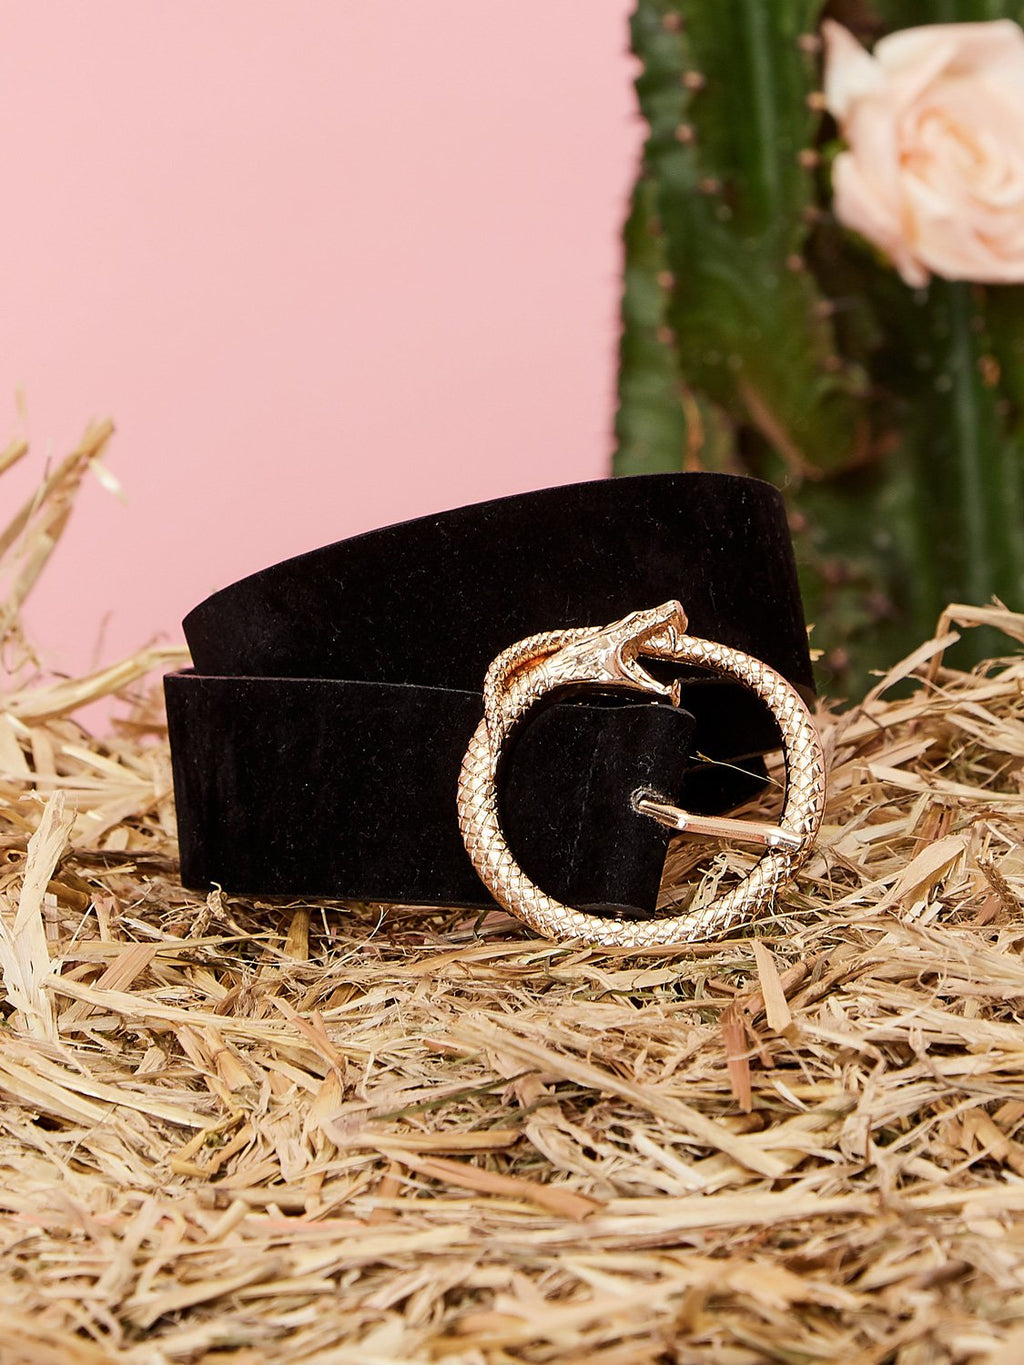 Velvety black belt with snake icon buckle from iconic British clothing brand Sister Jane.  COMPOSITION 100% PU